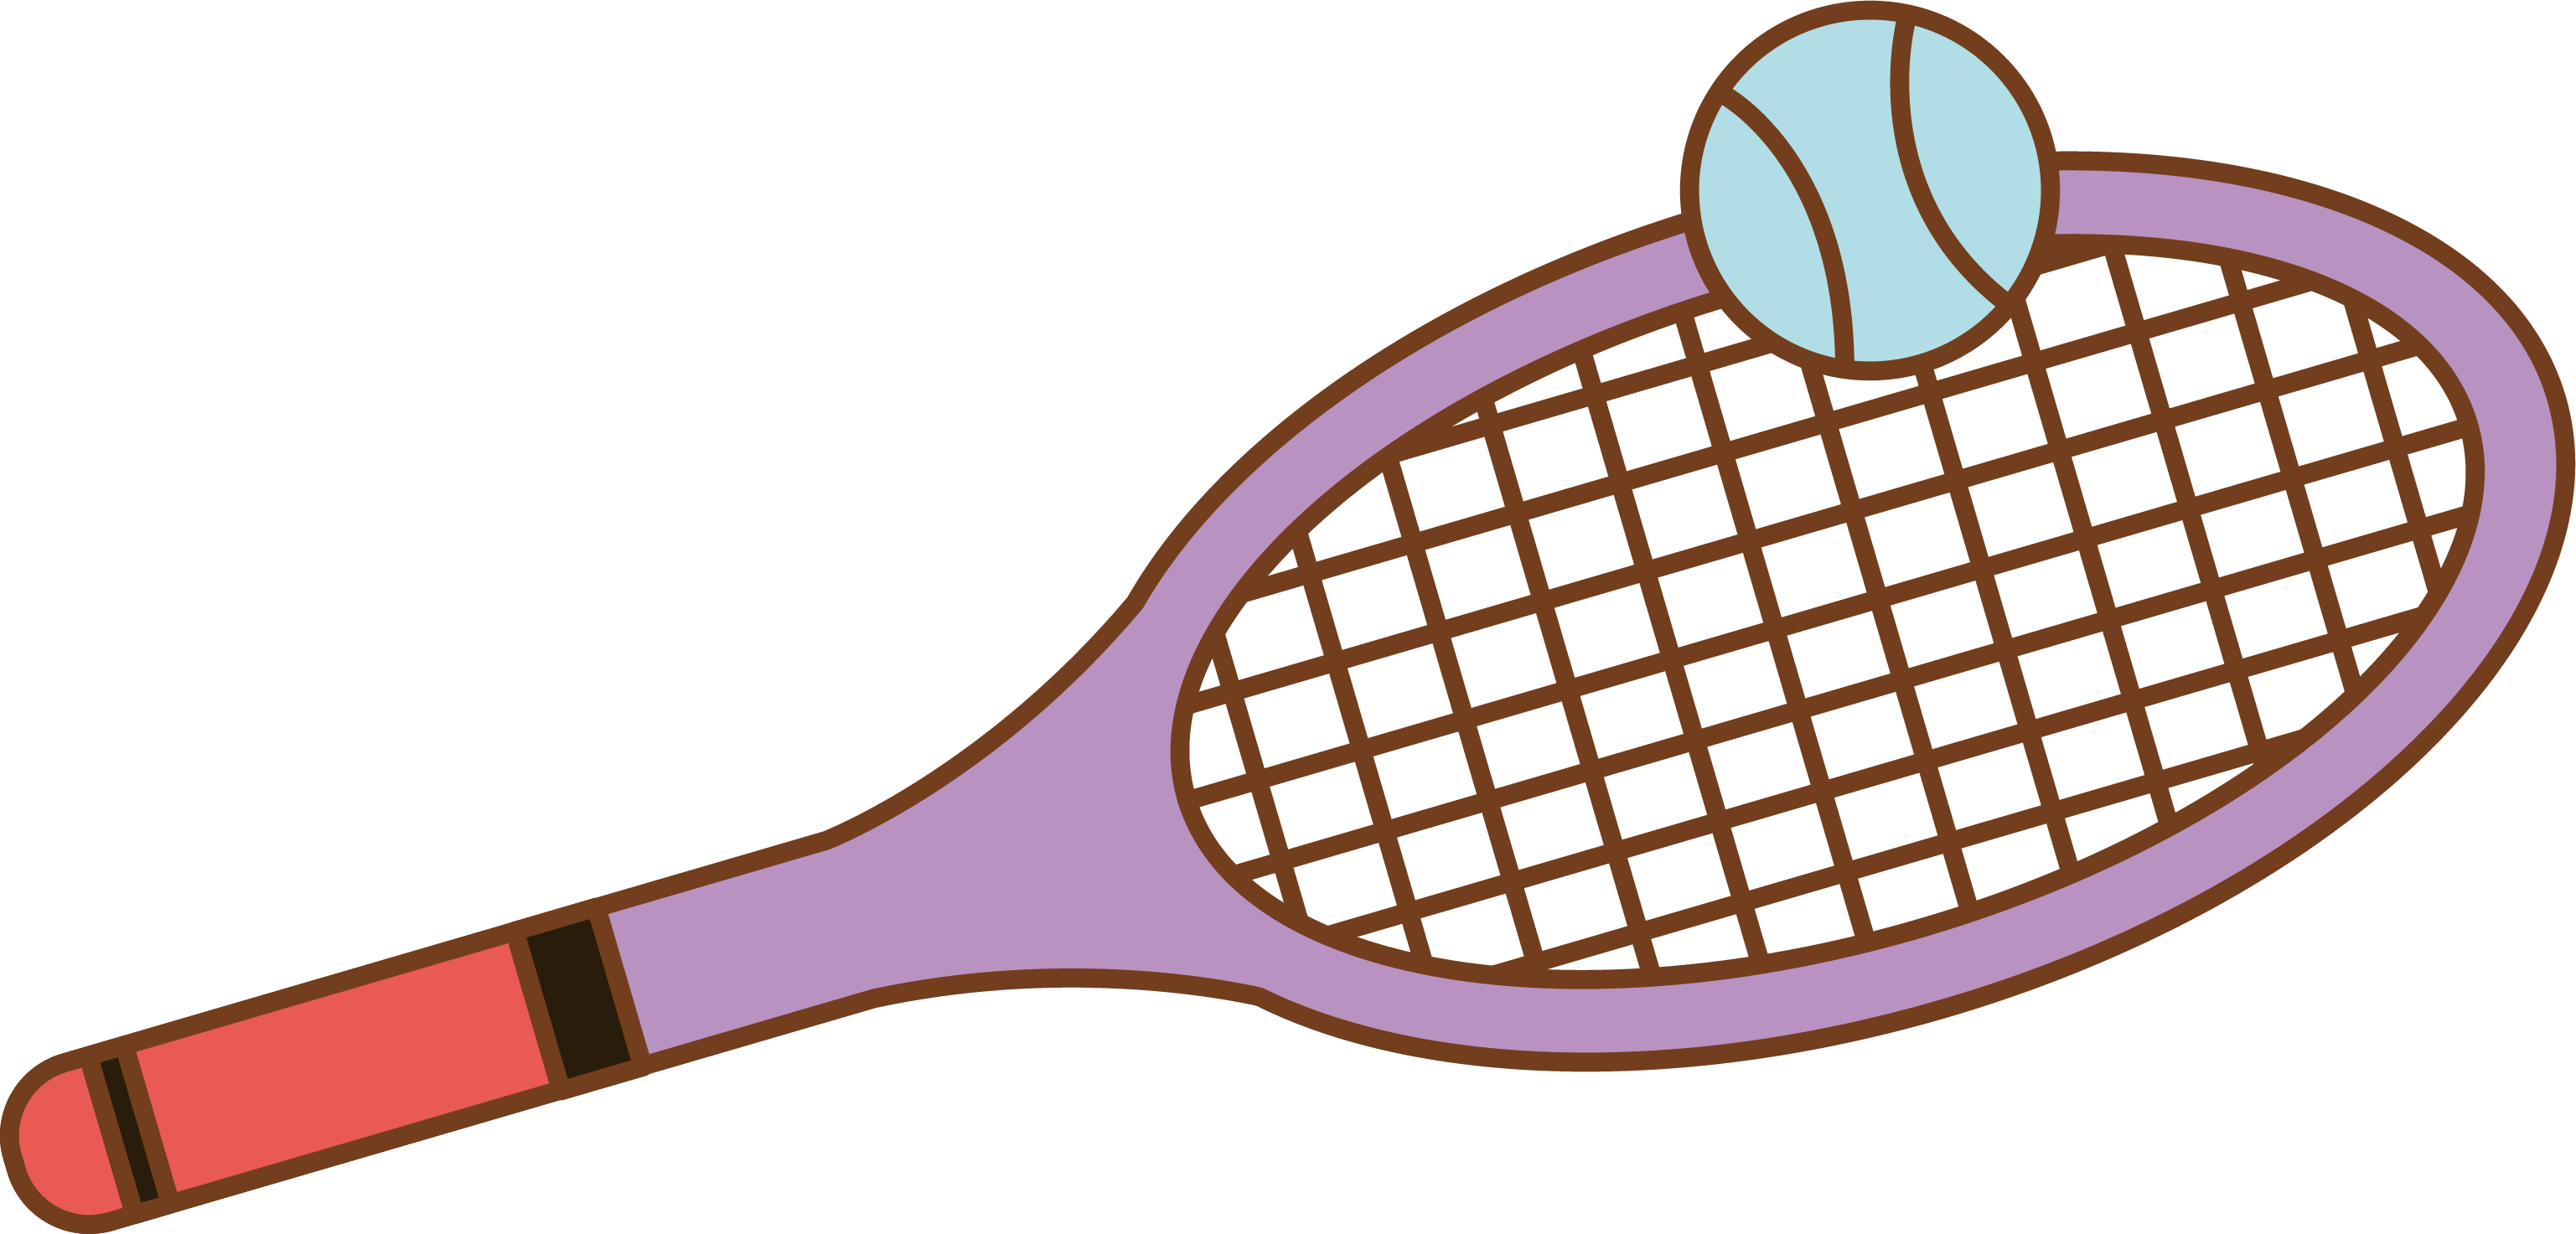 Tennis Drawing Images